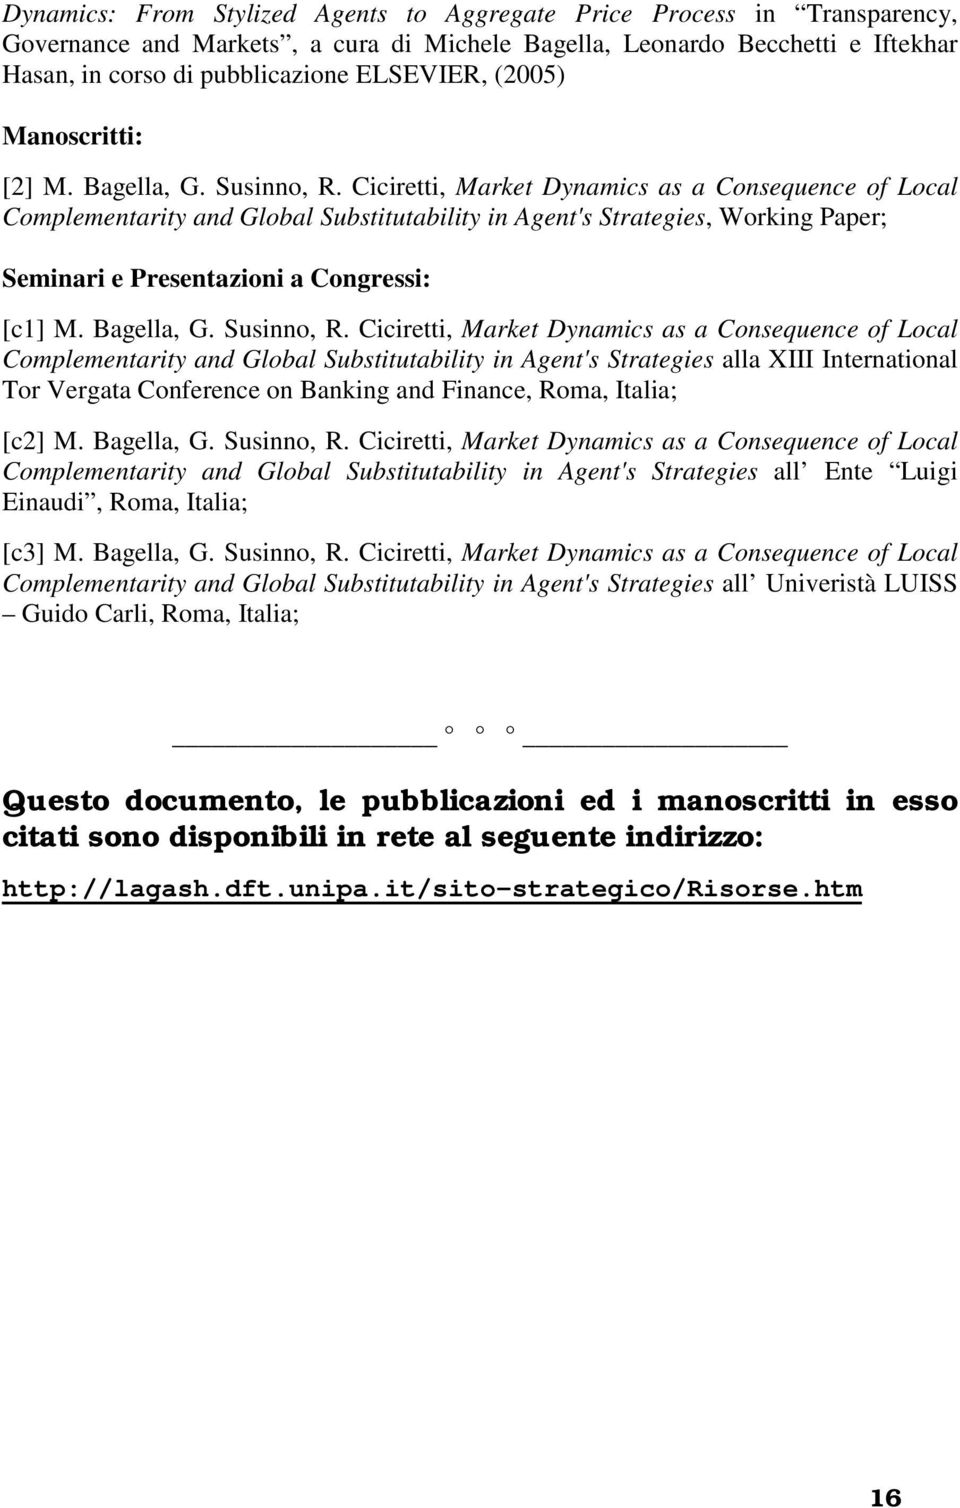 Ciciretti, Market Dynamics as a Consequence of Local Complementarity and Global Substitutability in Agent's Strategies, Working Paper; Seminari e Presentazioni a Congressi: [c1] M. Bagella, G.